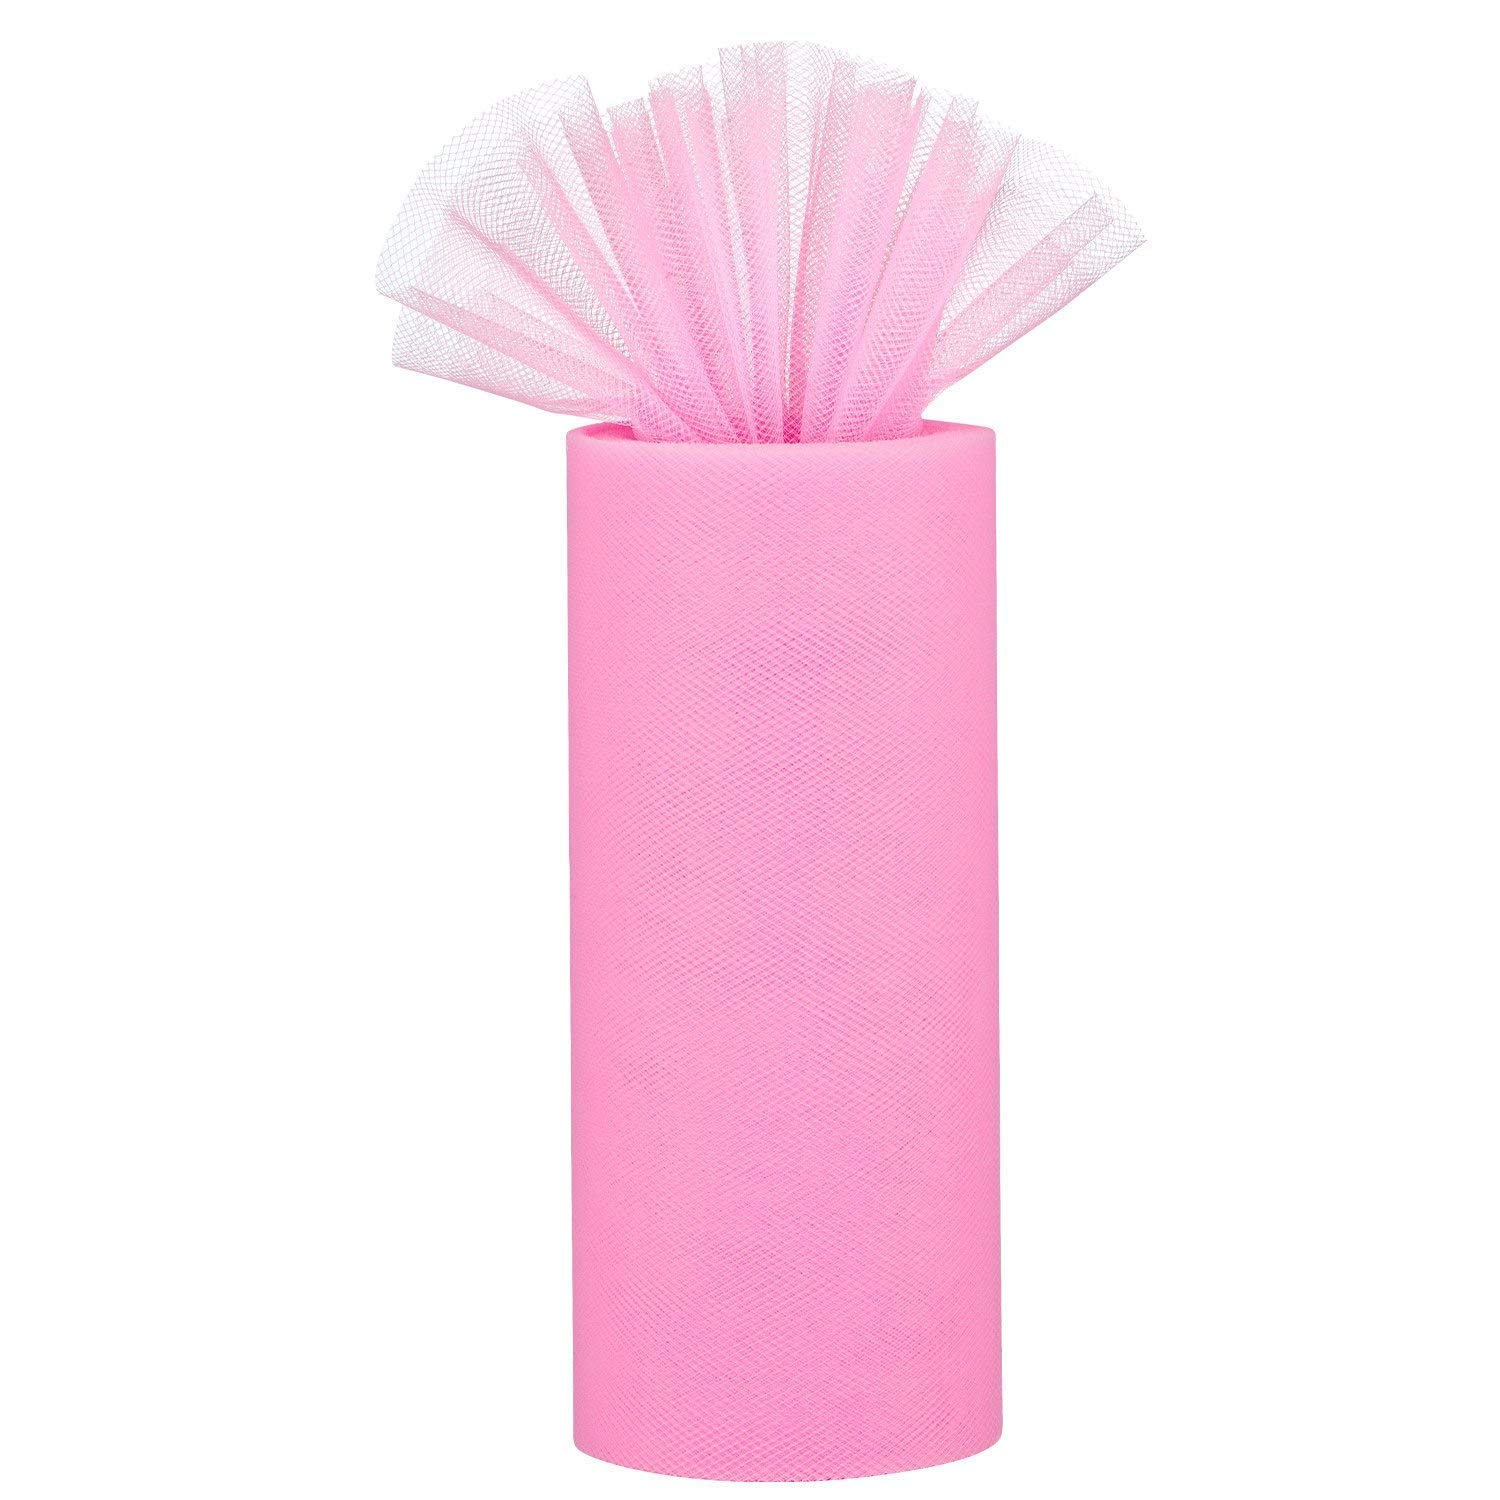 Vordas Tulle Roll 22M * 15CM for Gift Bow Craft Tutu Skirt Wedding Party Decorations Rose Red Tulle Fabric Rolls